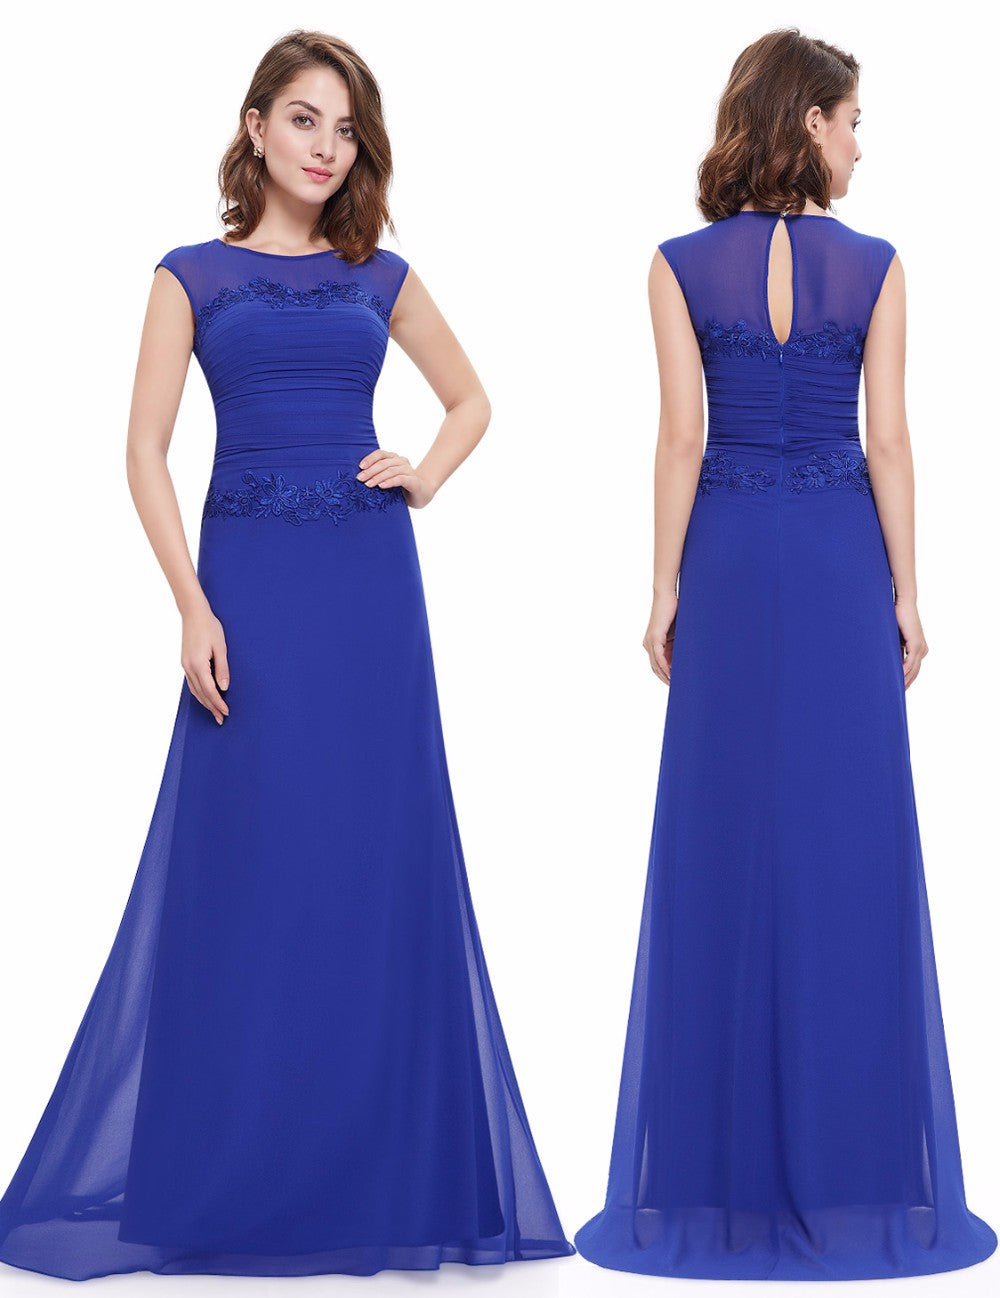 Elegant Bridesmaid Dress with Lace - FabFunBride